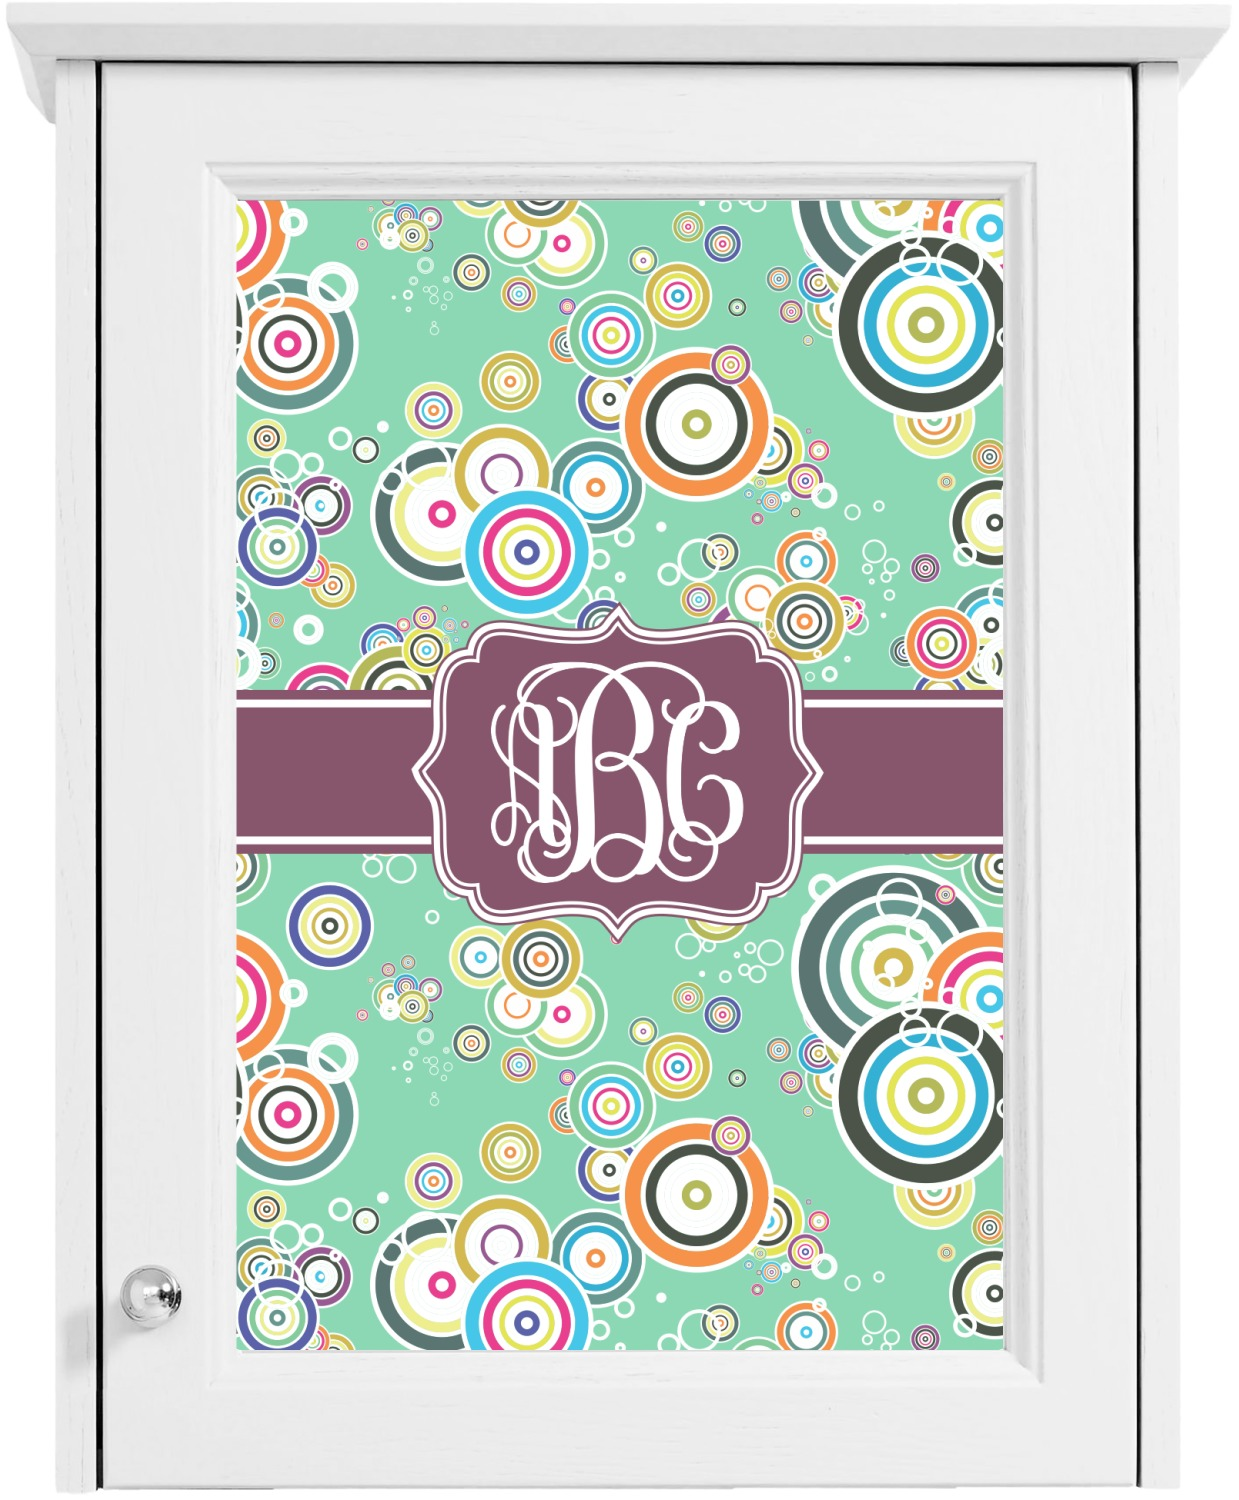 Colored circles cabinet decal small personalized for Kitchen colors with white cabinets with monogram stickers for cups